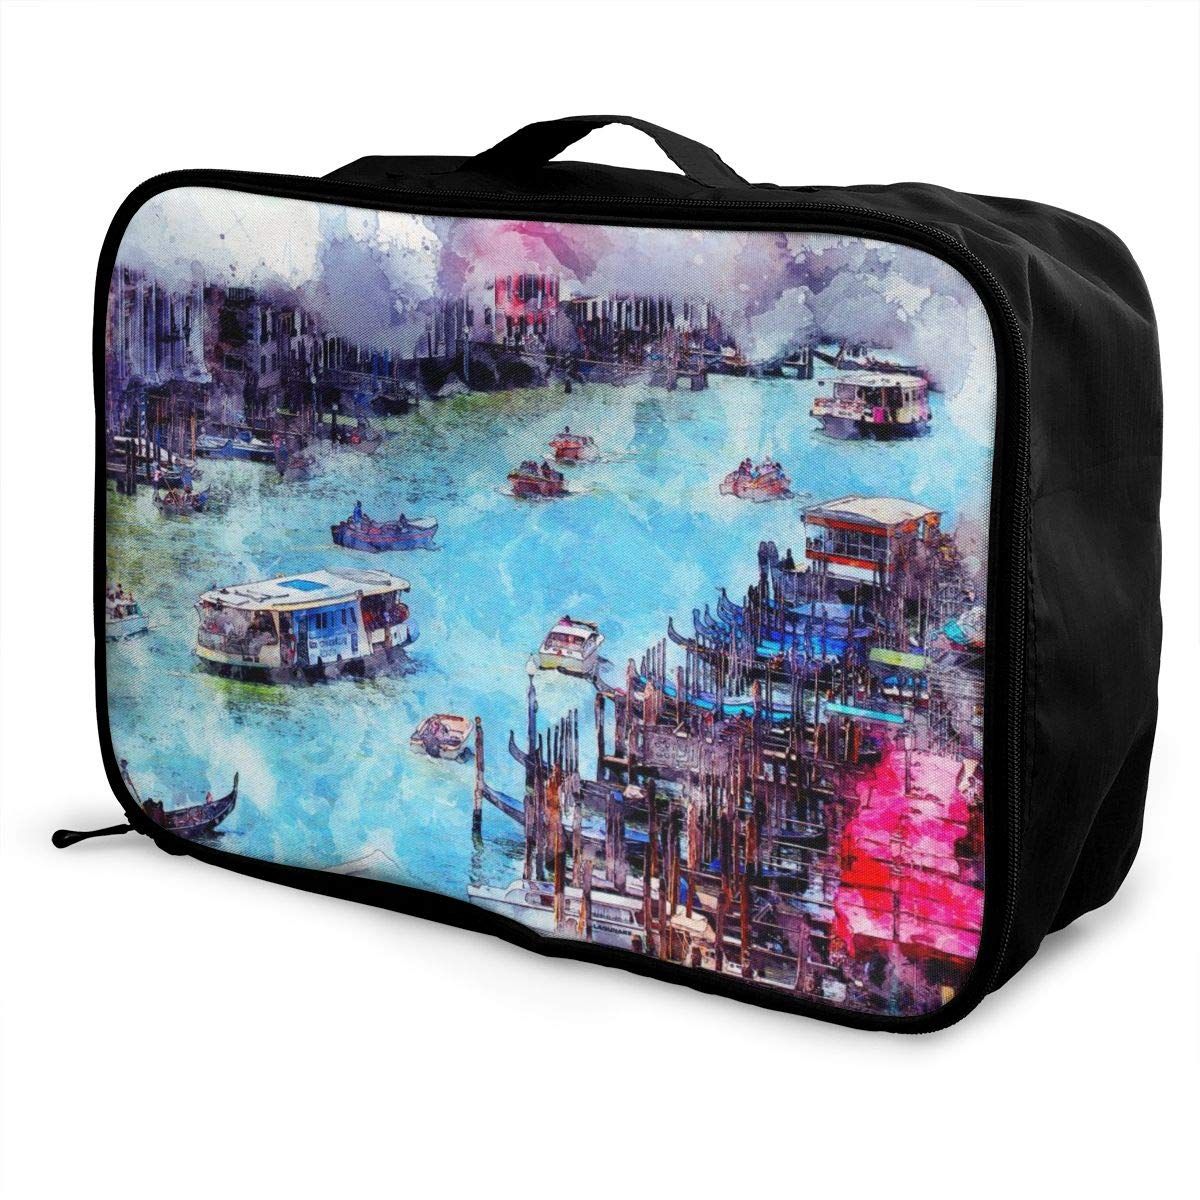 Ship Art Watercolor Nature Travel Lightweight Waterproof Foldable Storage Carry Luggage Large Capacity Portable Luggage Bag Duffel Bag